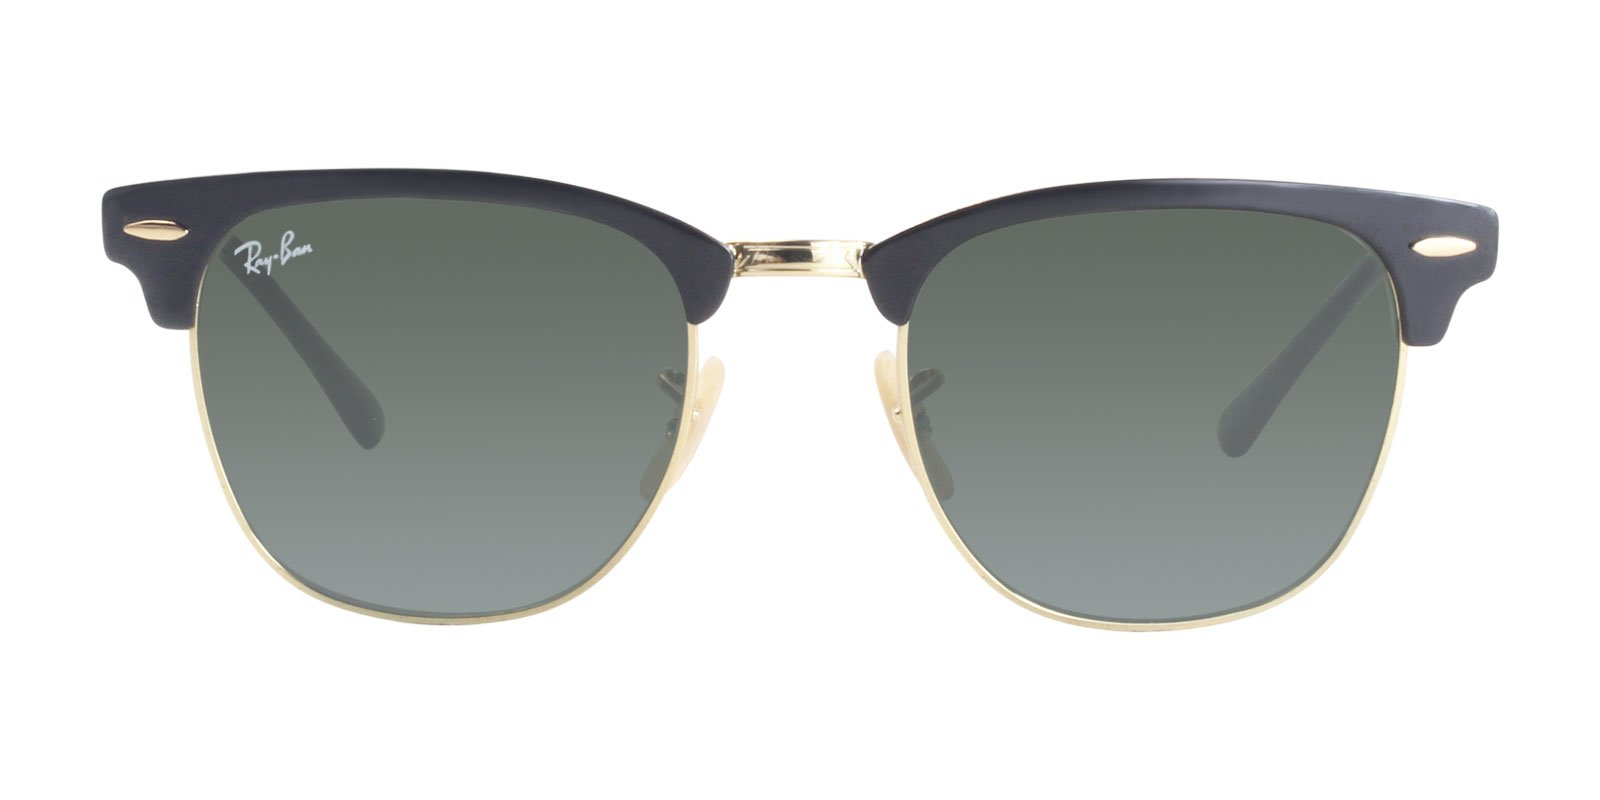 Ray Ban - RB3716 Black Gold Rectangular Unisex Sunglasses - 51mm-Sunglasses-Designer Eyes